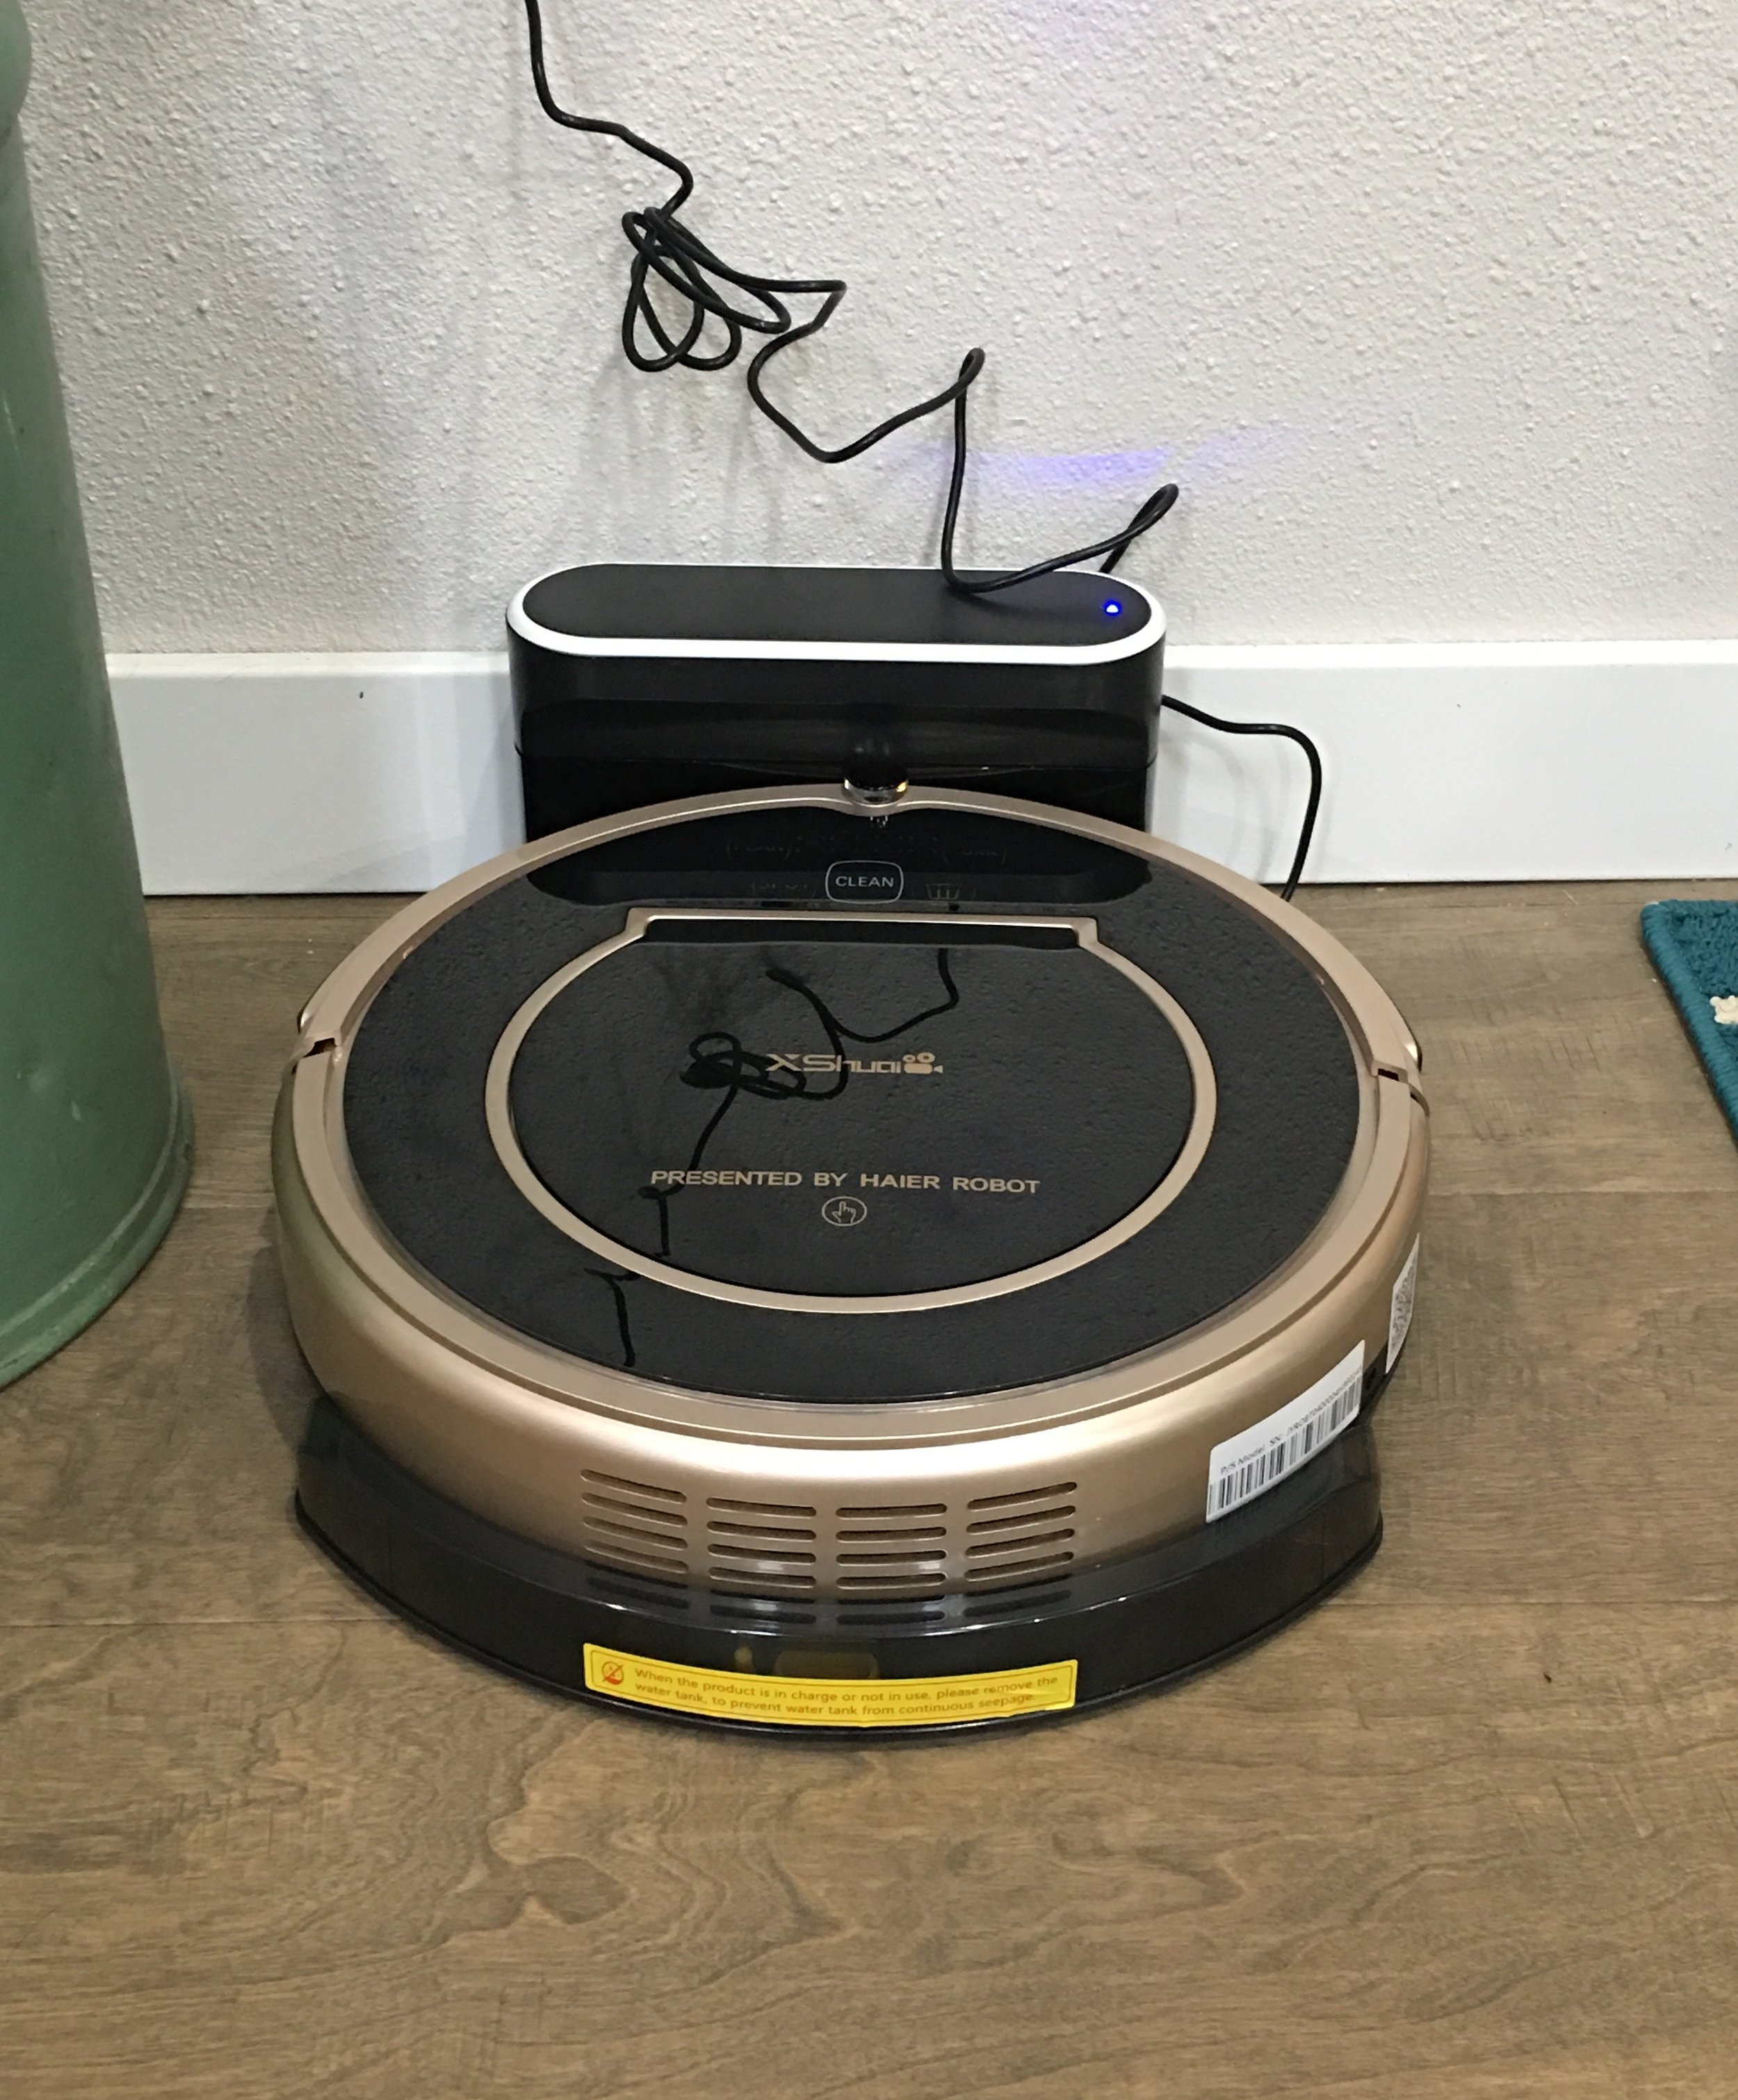 roomba knockoff review xshuai